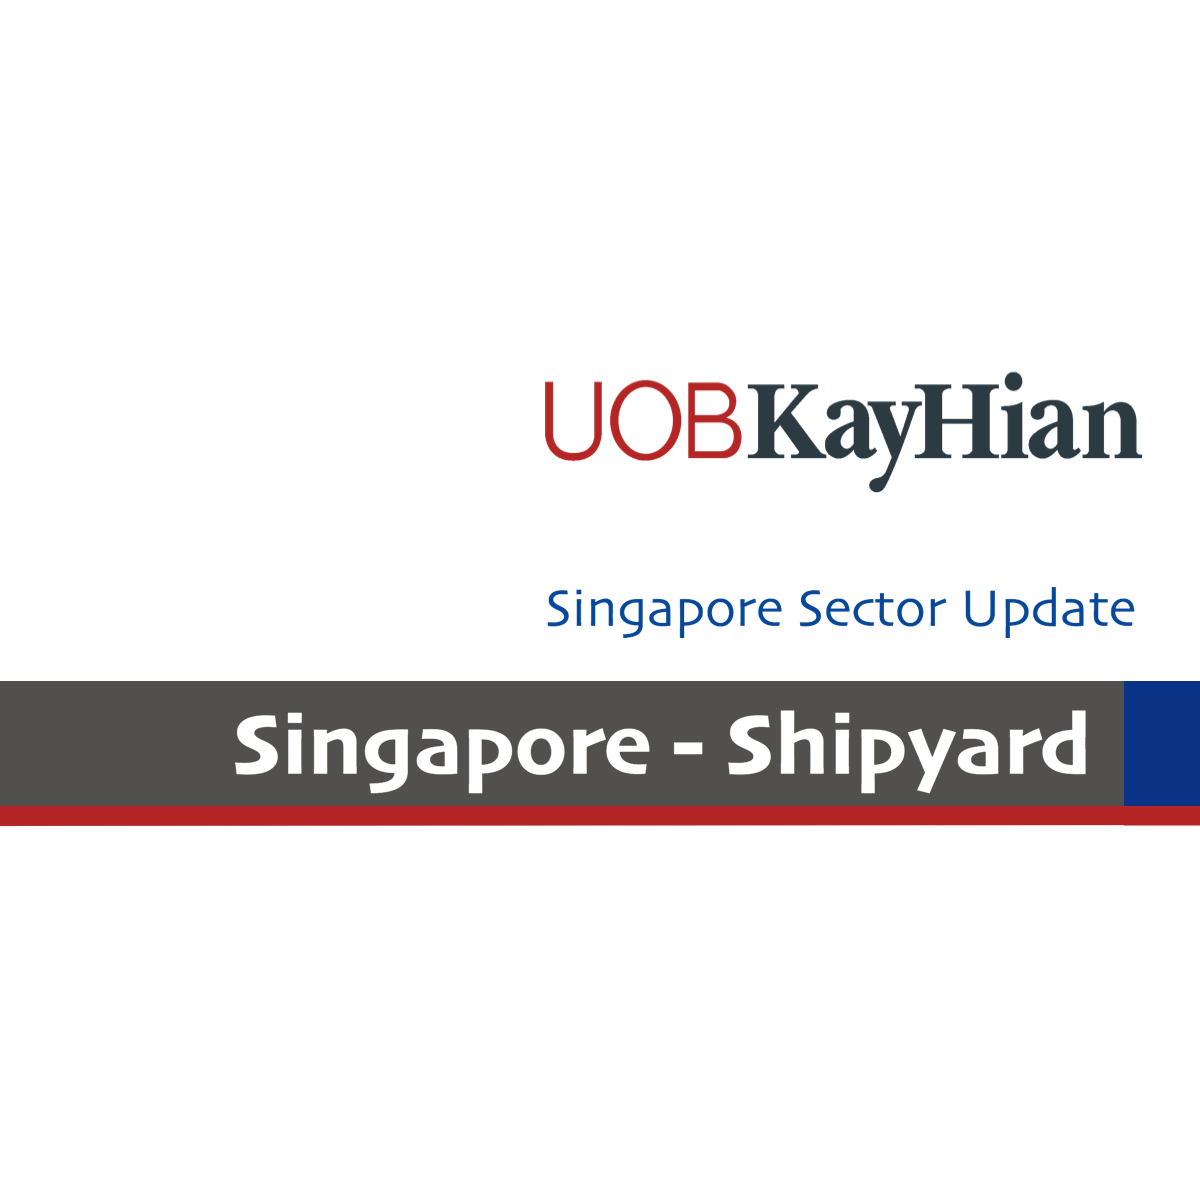 Shipyard ‒ Singapore - UOB Kay Hian 2017-05-29: Jack-up Fundamentals Improving, But Inventory Risks Will Remain For Longer